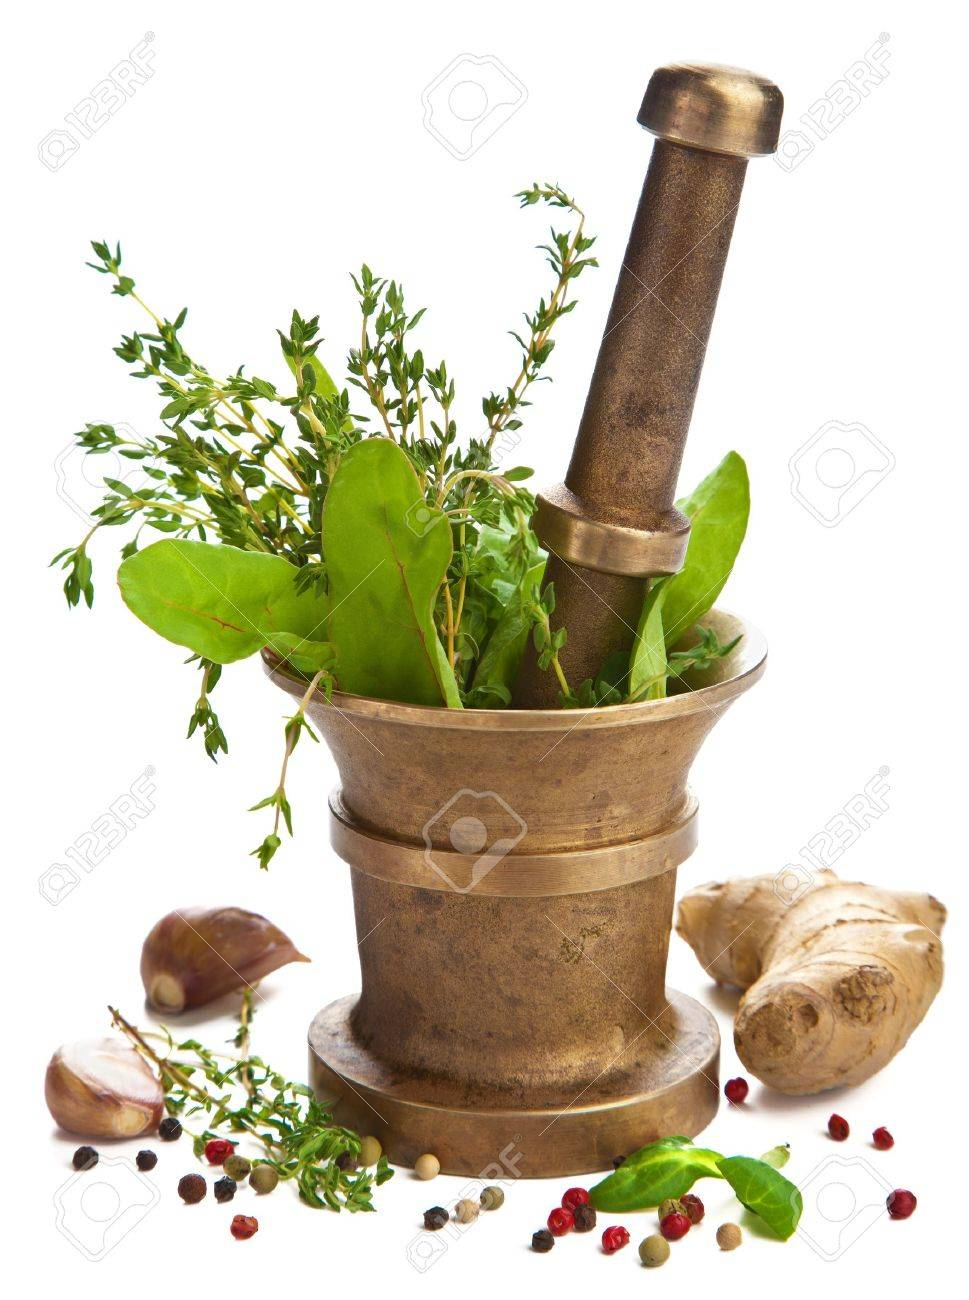 mortar with herbs isolated Stock Photo - 8459690